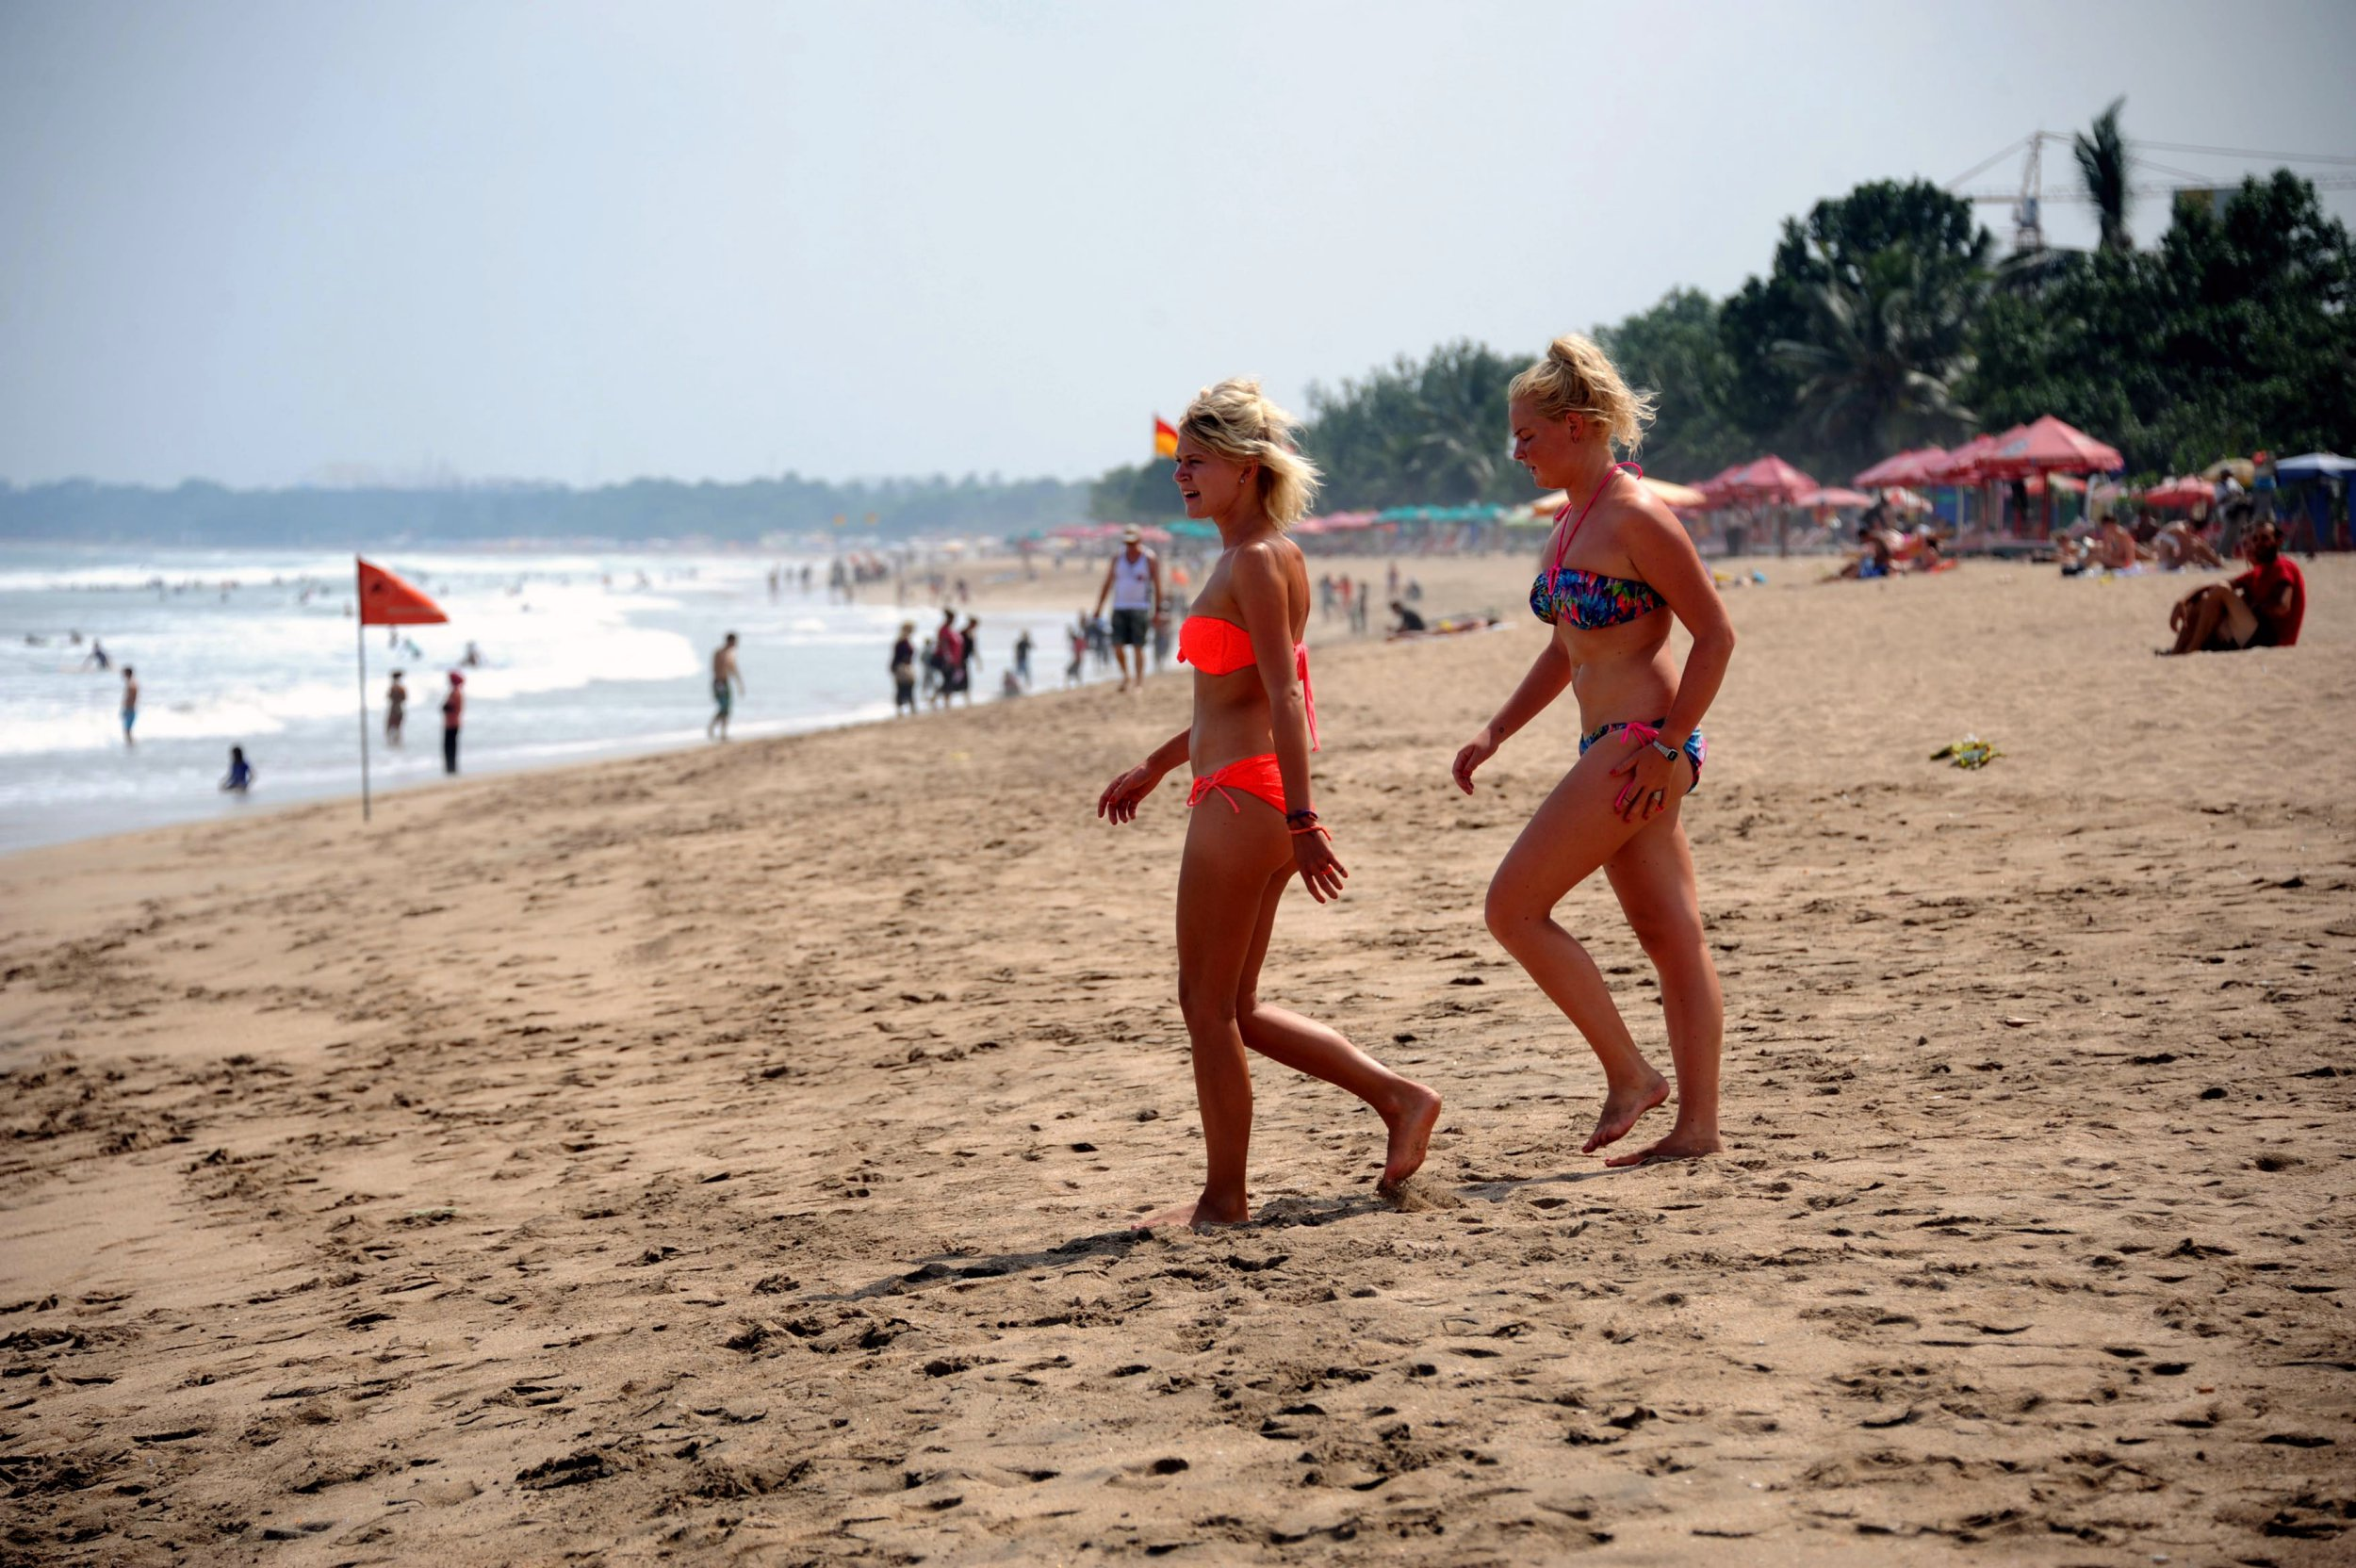 Tourists wearing bikinis walk along Kuta beach in Bali on June 6, 2013. Contestants at this year's Miss World beauty pageant will not wear bikinis in the parade in a bid to avoid causing offence in Muslim-majority Indonesia, organisers said on June 5, 2013. AFP PHOTO/SONNY TUMBELAKA (Photo credit should read SONNY TUMBELAKA/AFP/Getty Images)